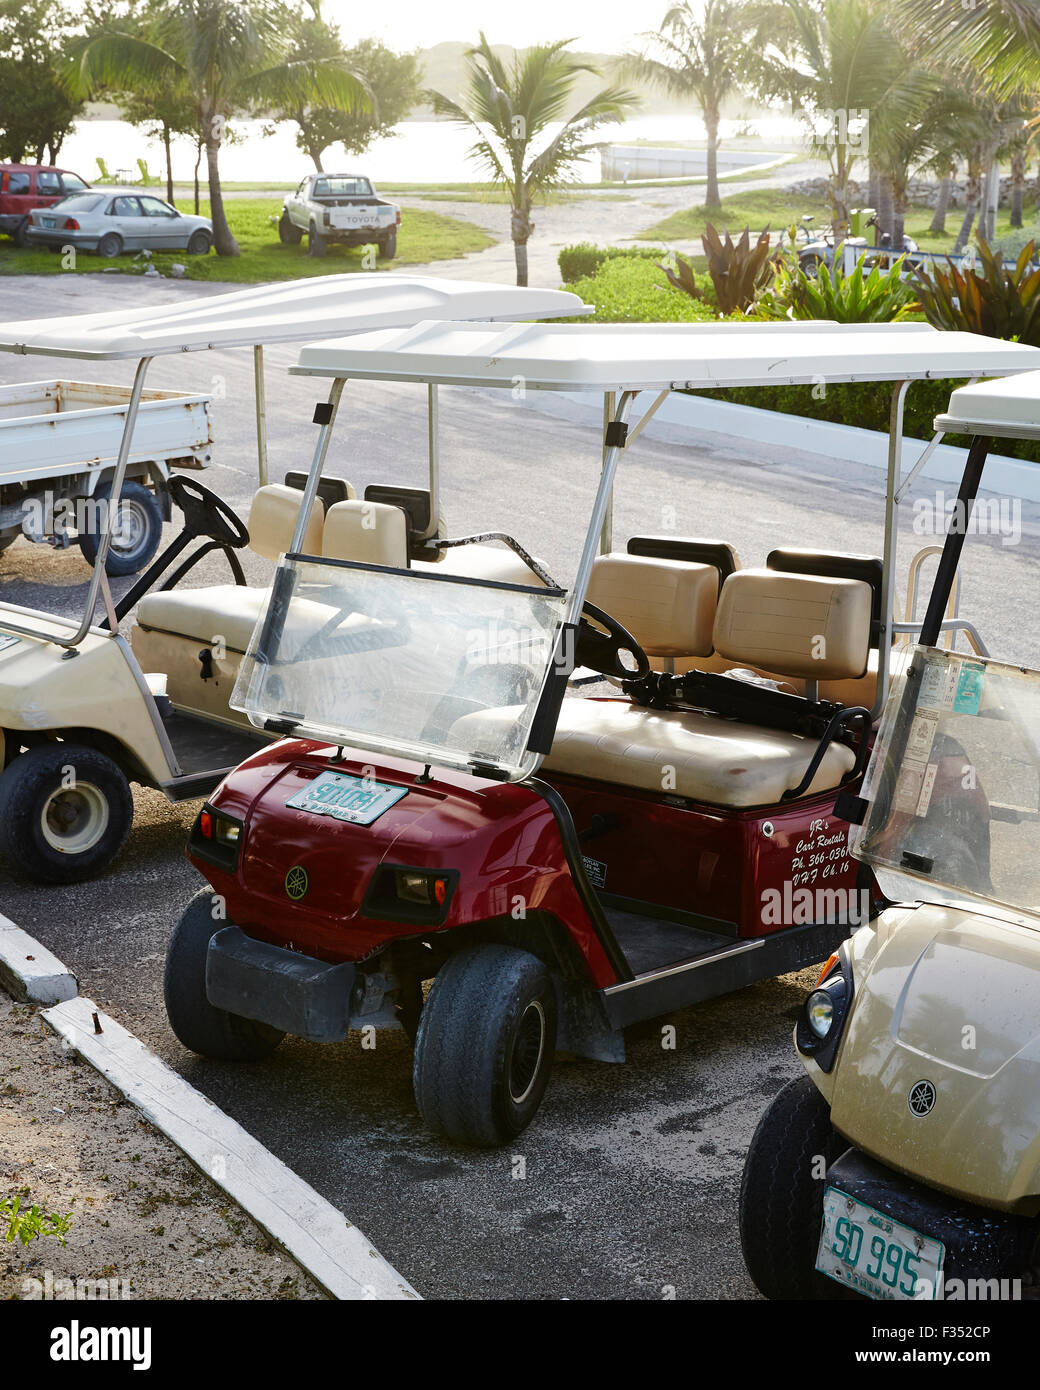 Golf Cart in the Bahamas - Stock Image